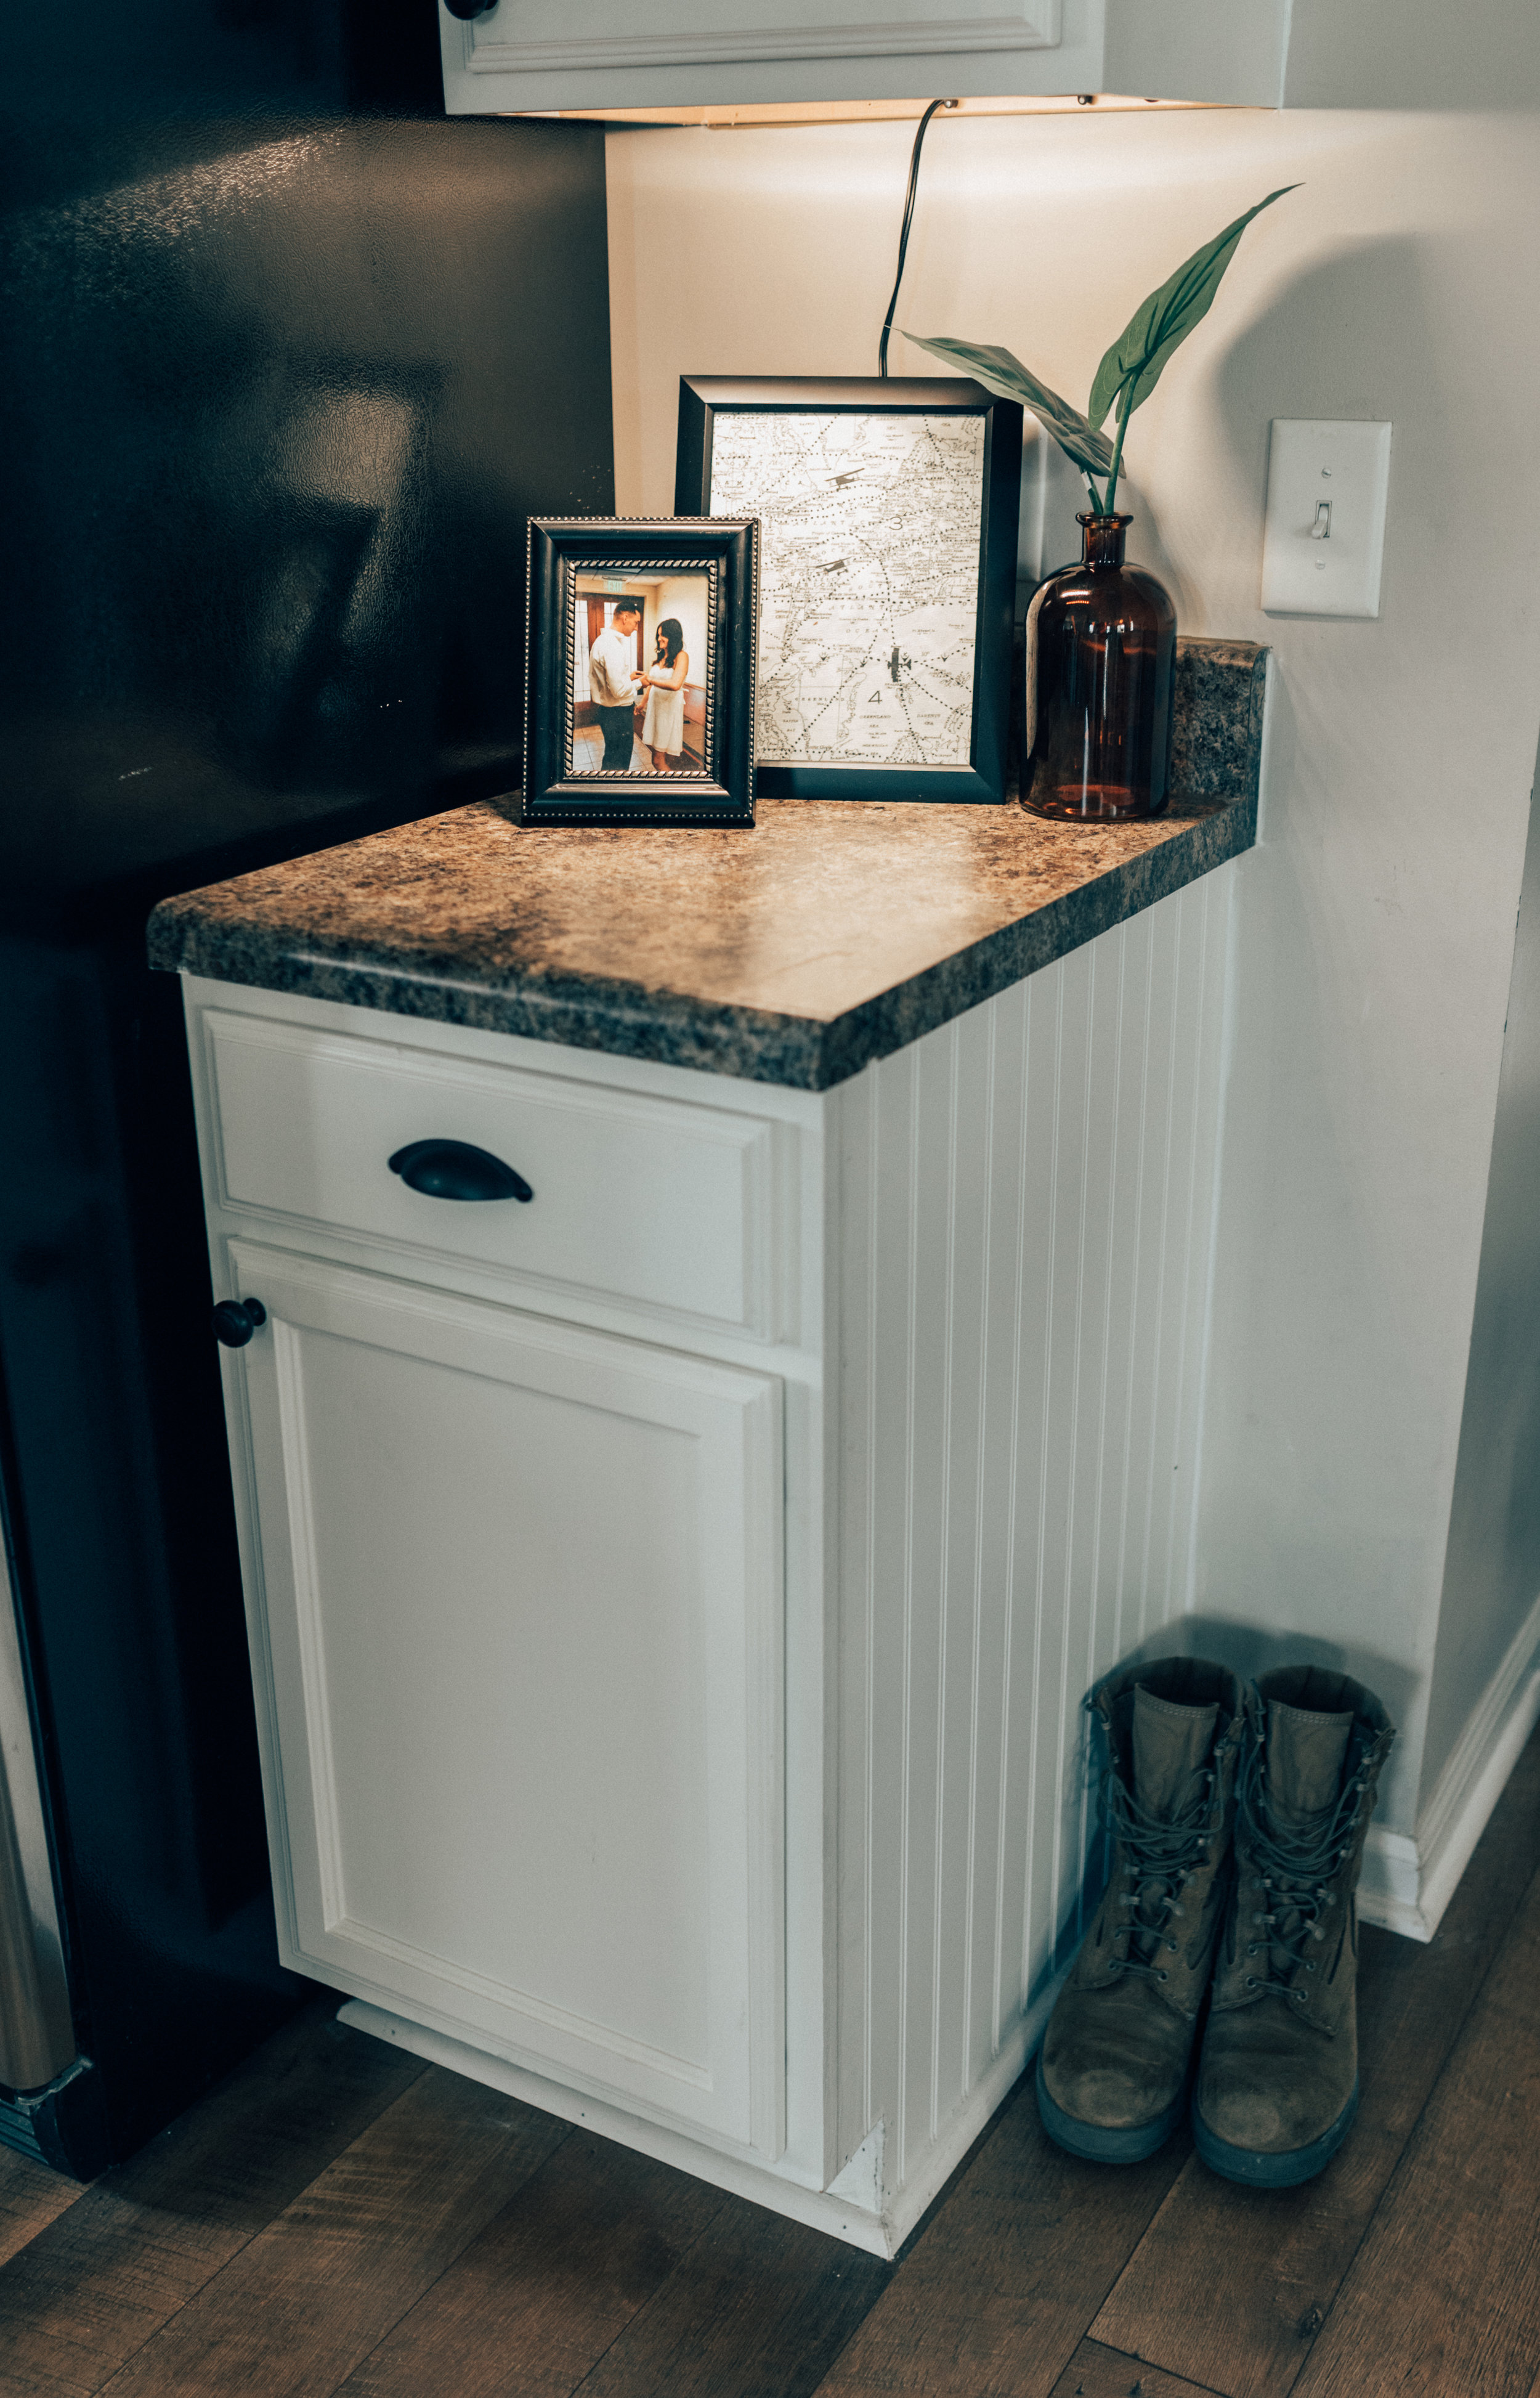 Our only wedding picture sits proudly in our countertop!